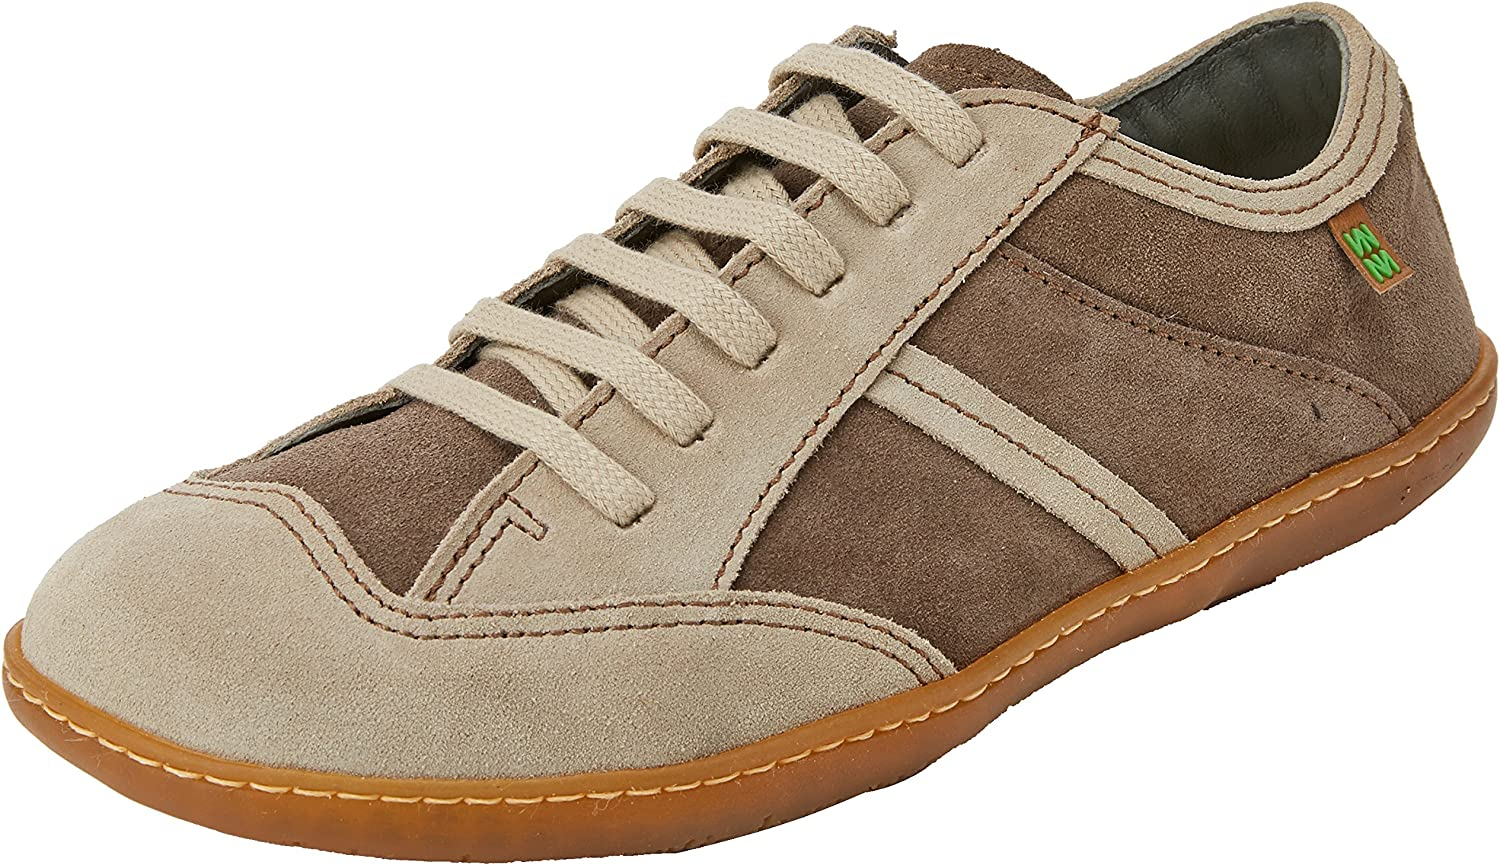 El Naturalista Unisex Adults' N5278 Low-Top Sneakers